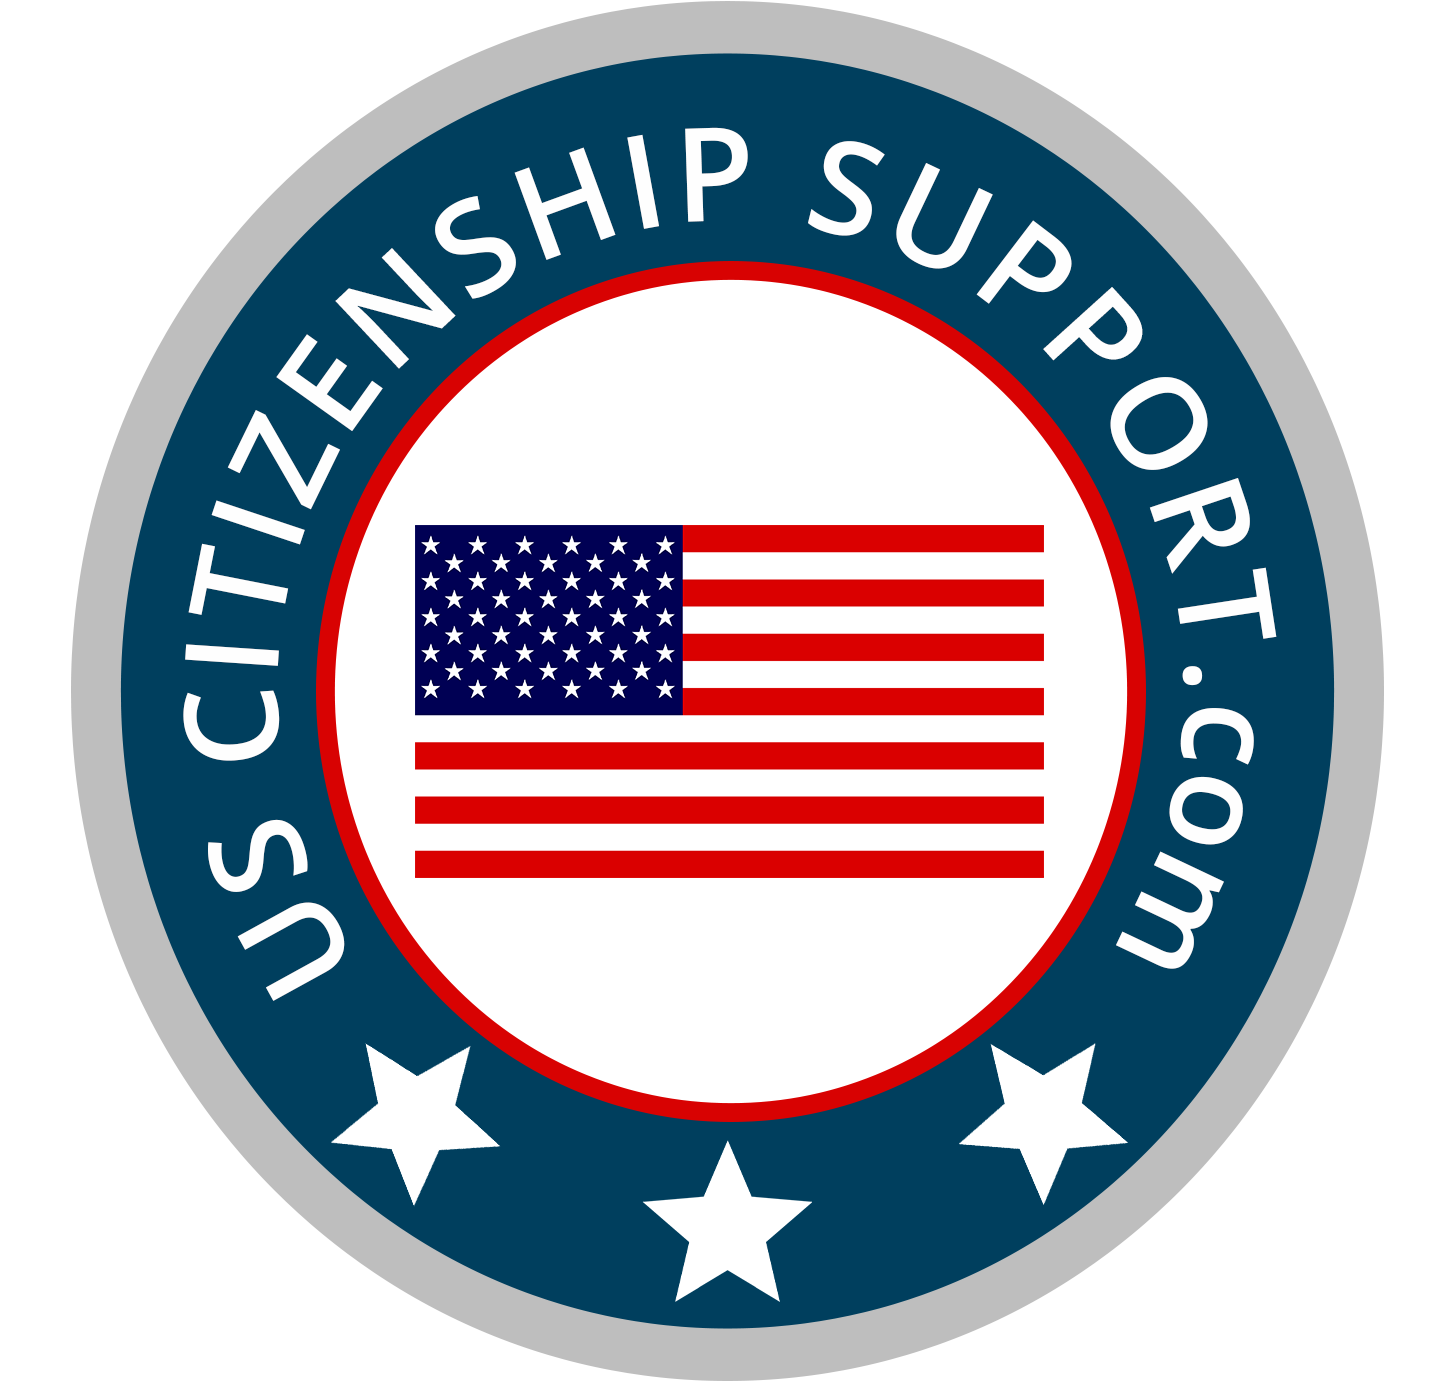 Ceremony clipart naturalization S Test US Tests Practice